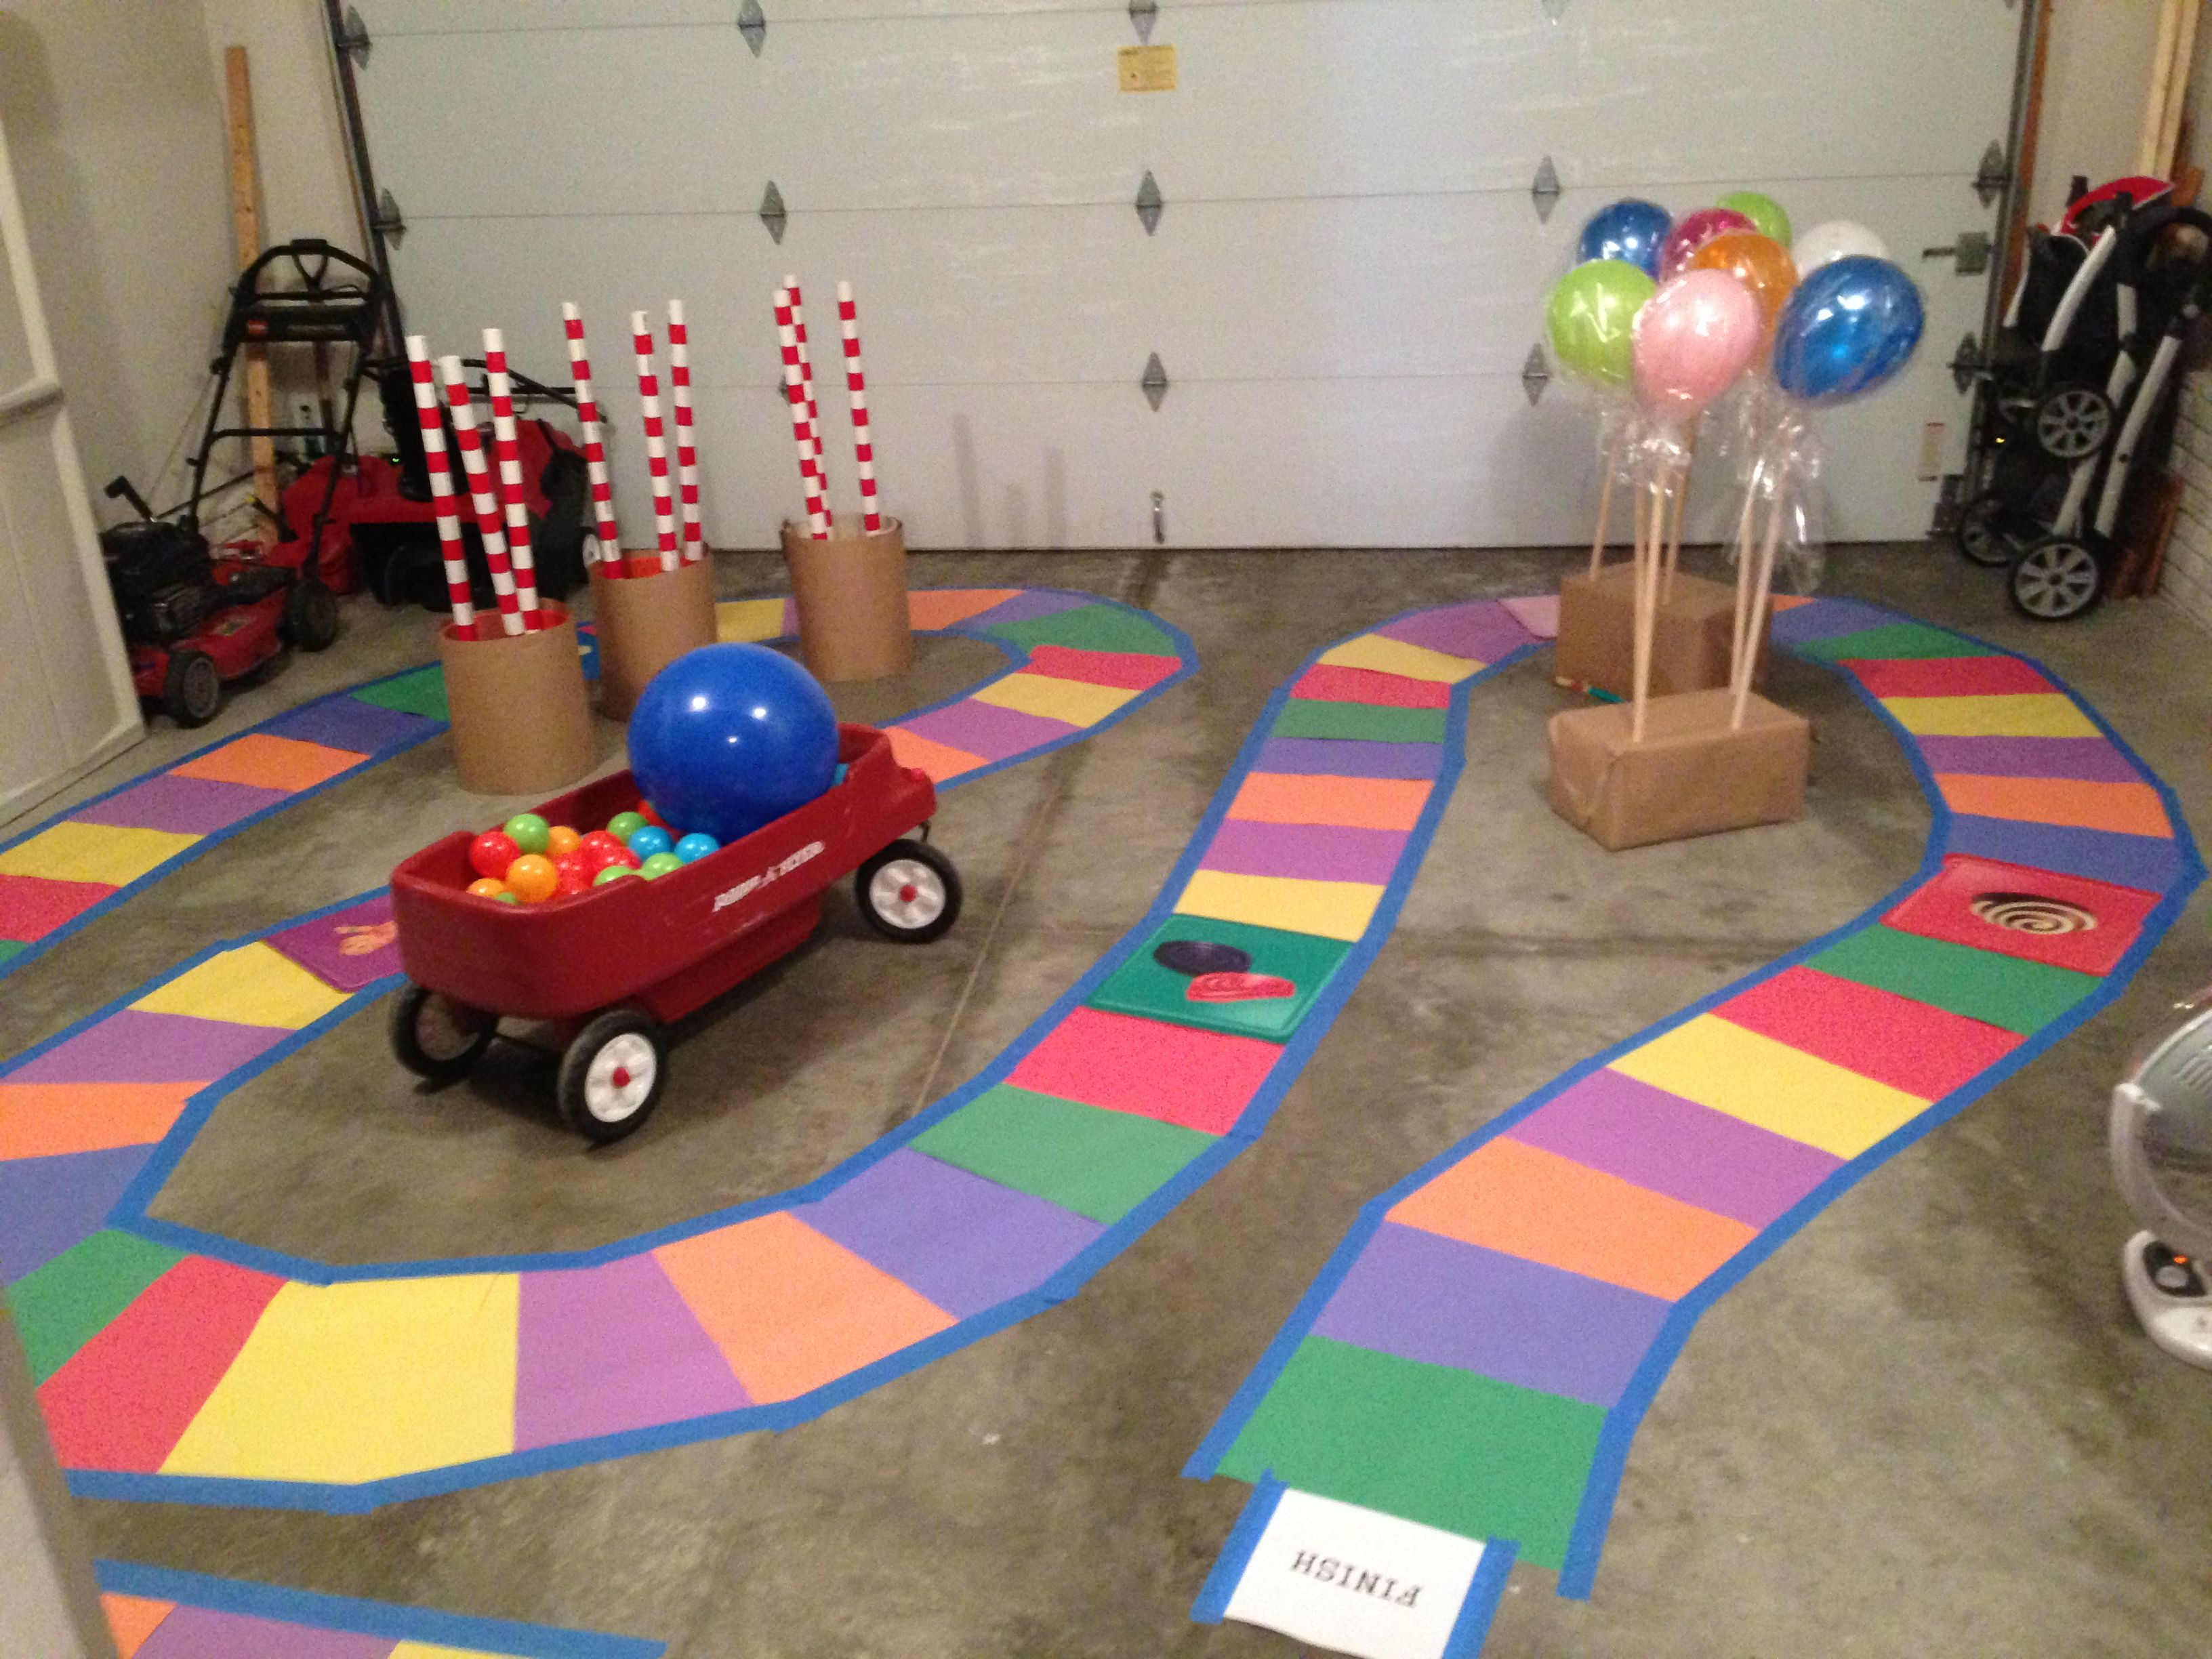 Giant Candyland board. Fun activity for the kids